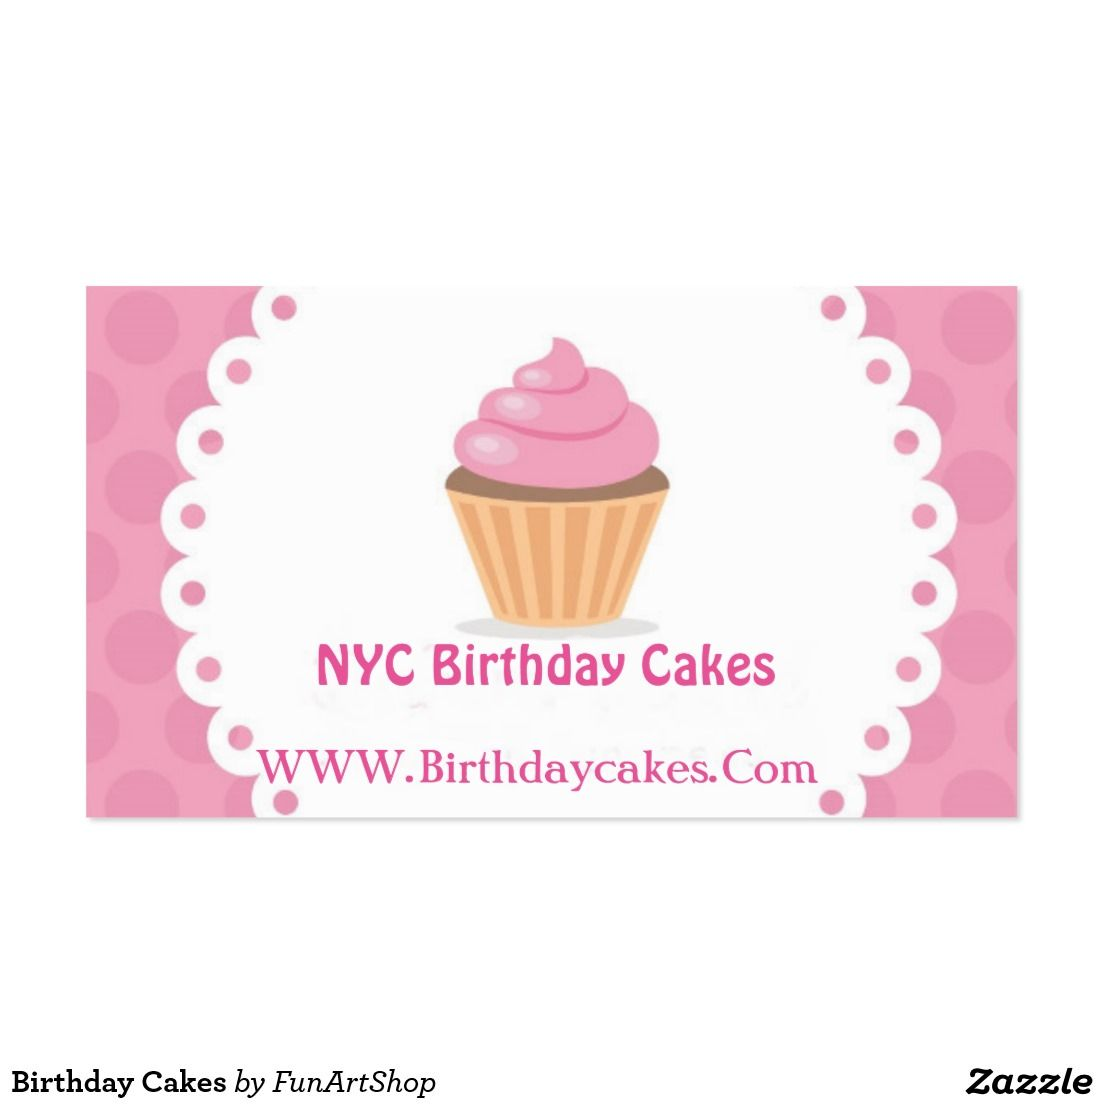 Birthday Cakes Business Card